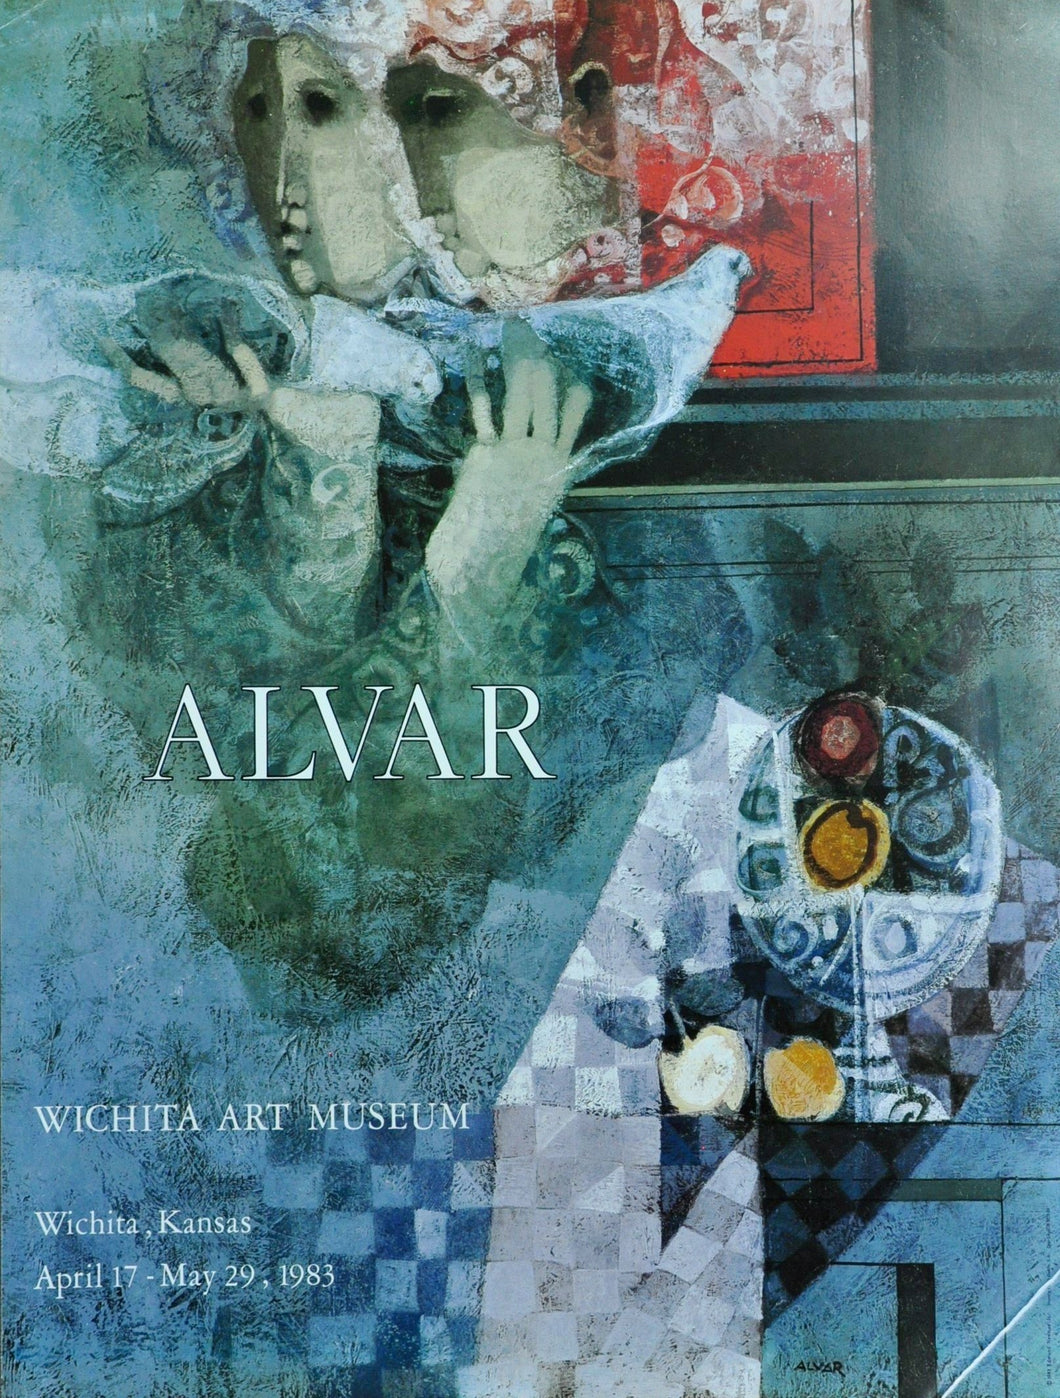 Artist Àlvar show poster from 1983 at the Wichita Art Museum